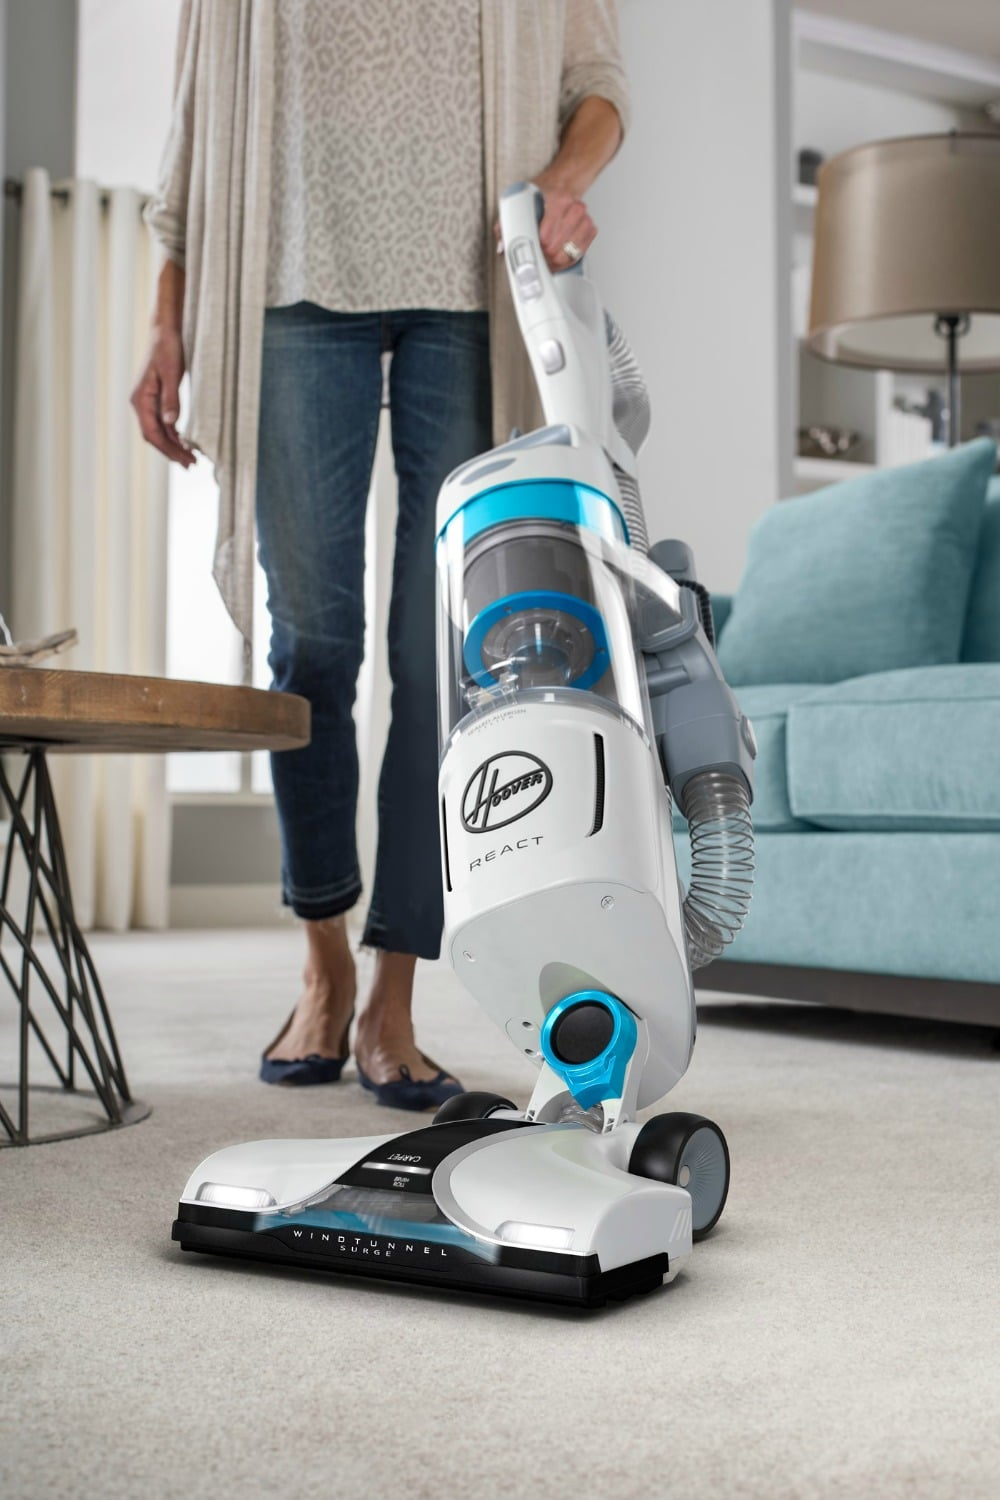 Hoover React Upright Vacuum